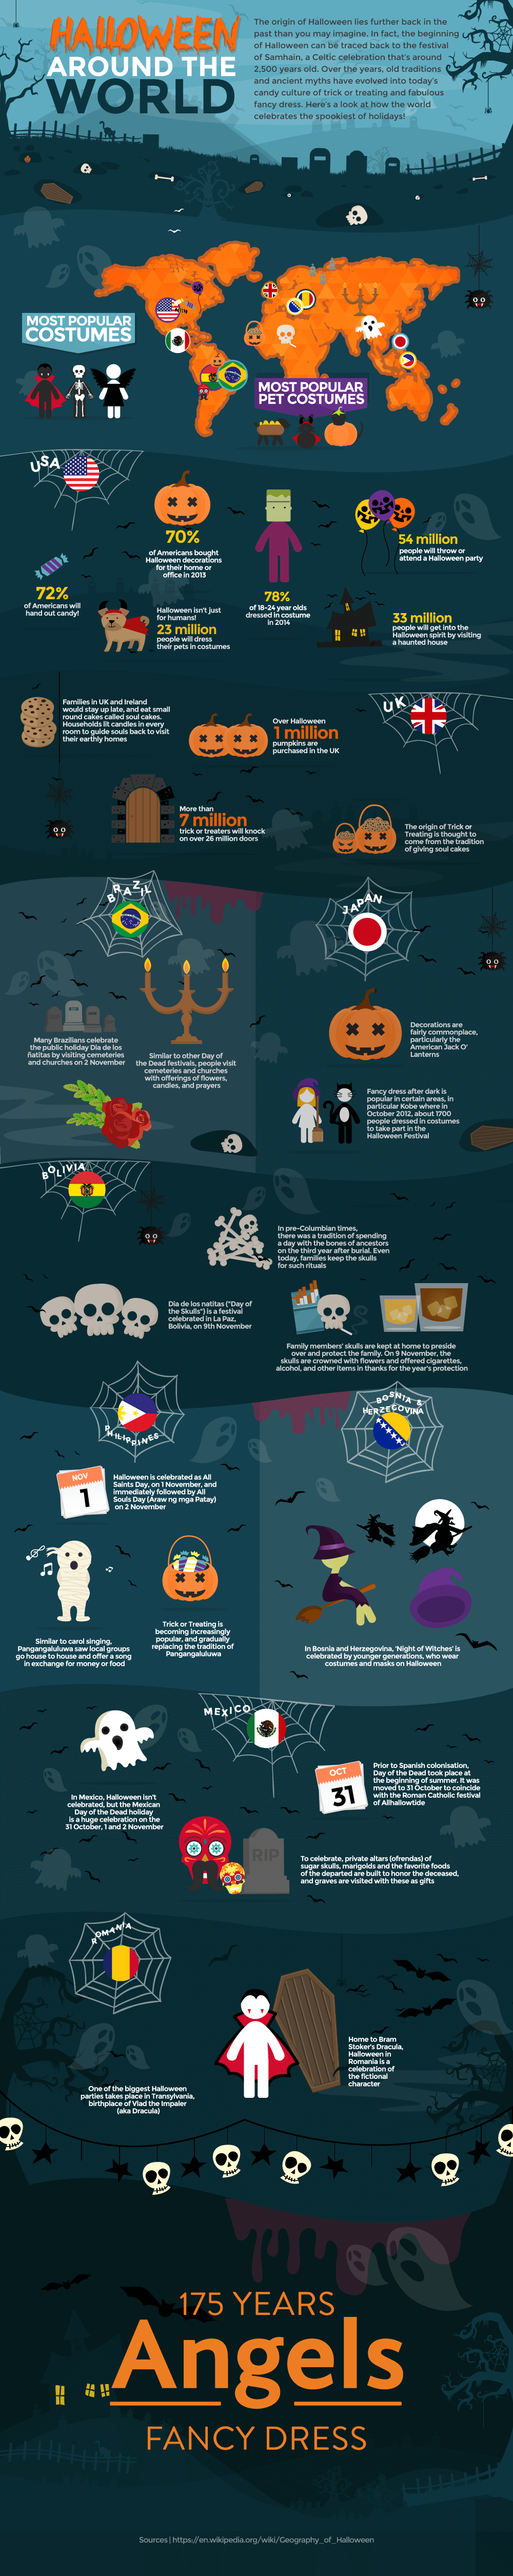 Halloween-Around-The-World-Infographic